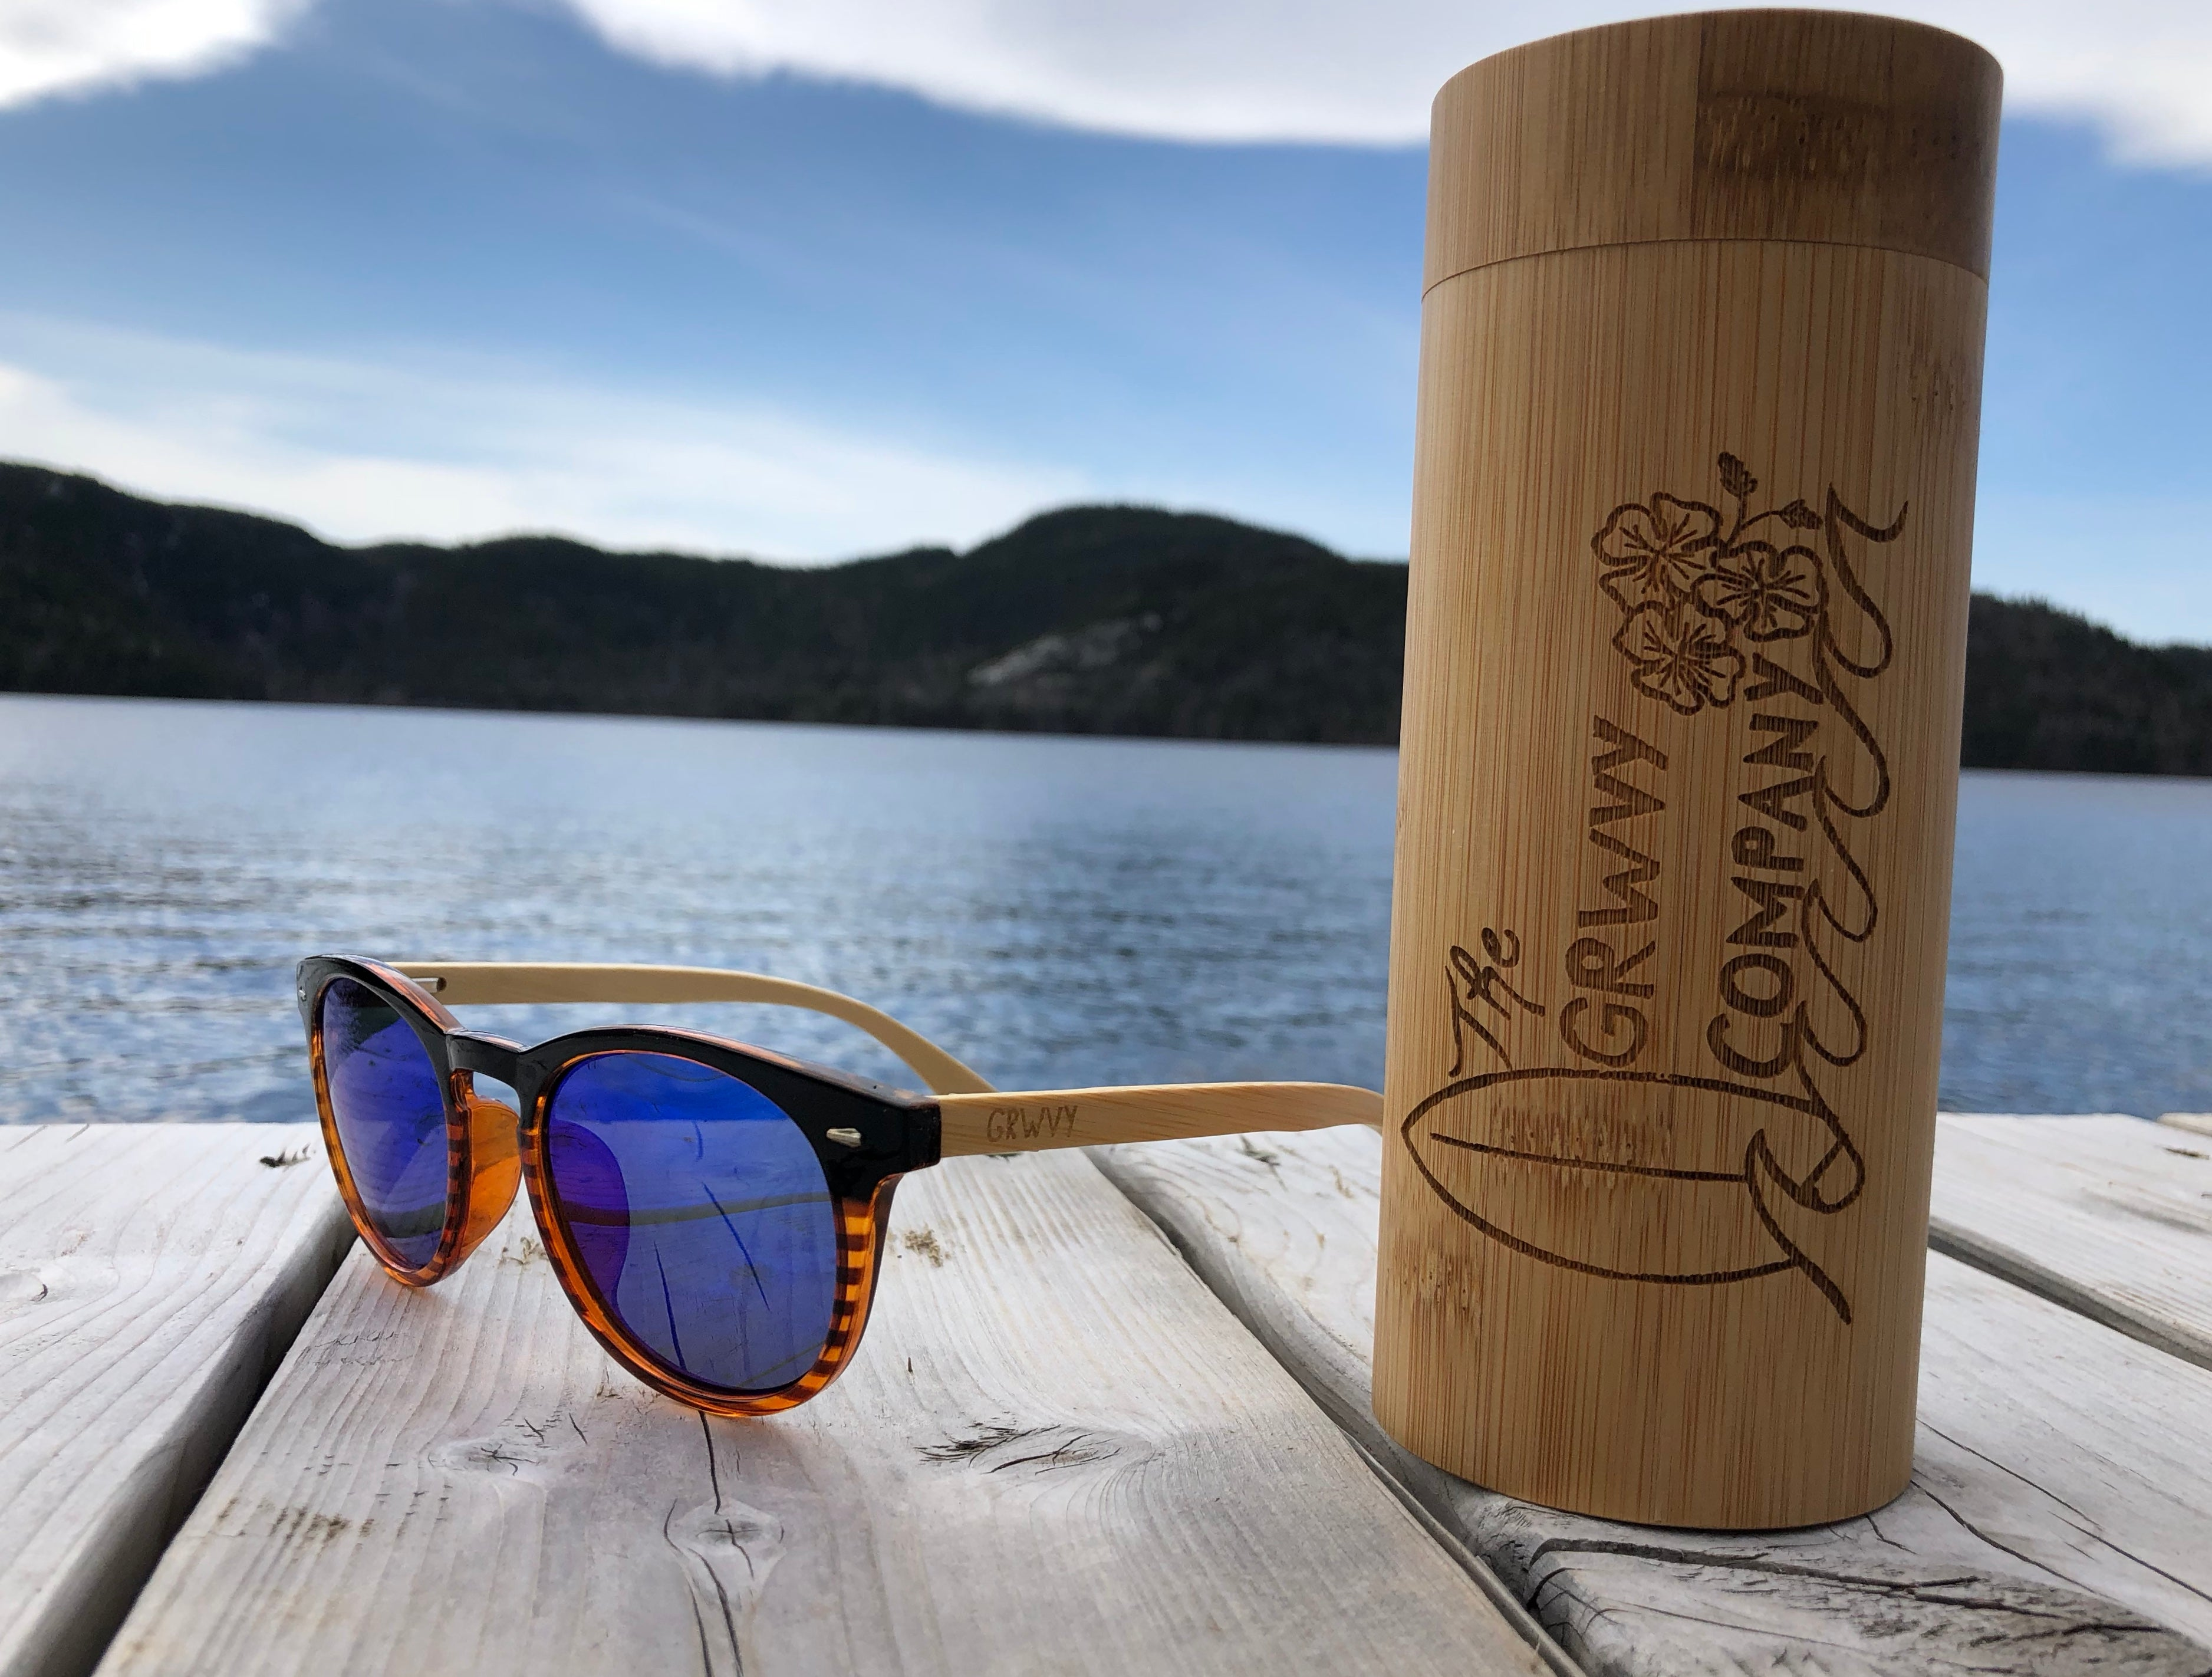 Reef - Bamboo and plastic sunglasses - GRWVY